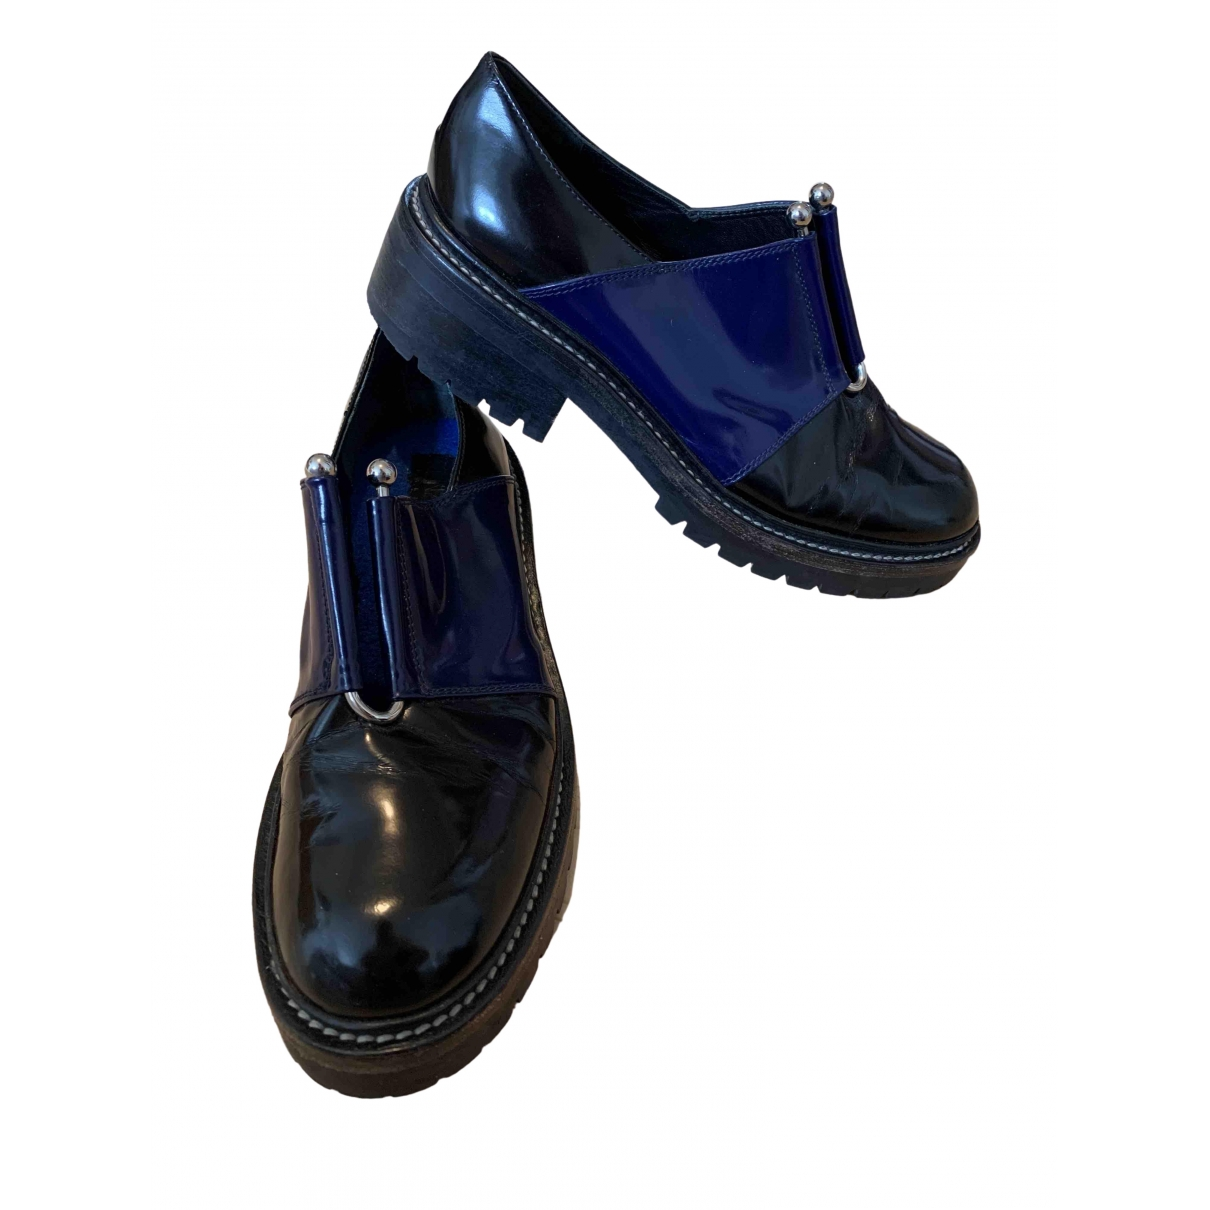 Kenzo \N Black Leather Mules & Clogs for Women 41 EU